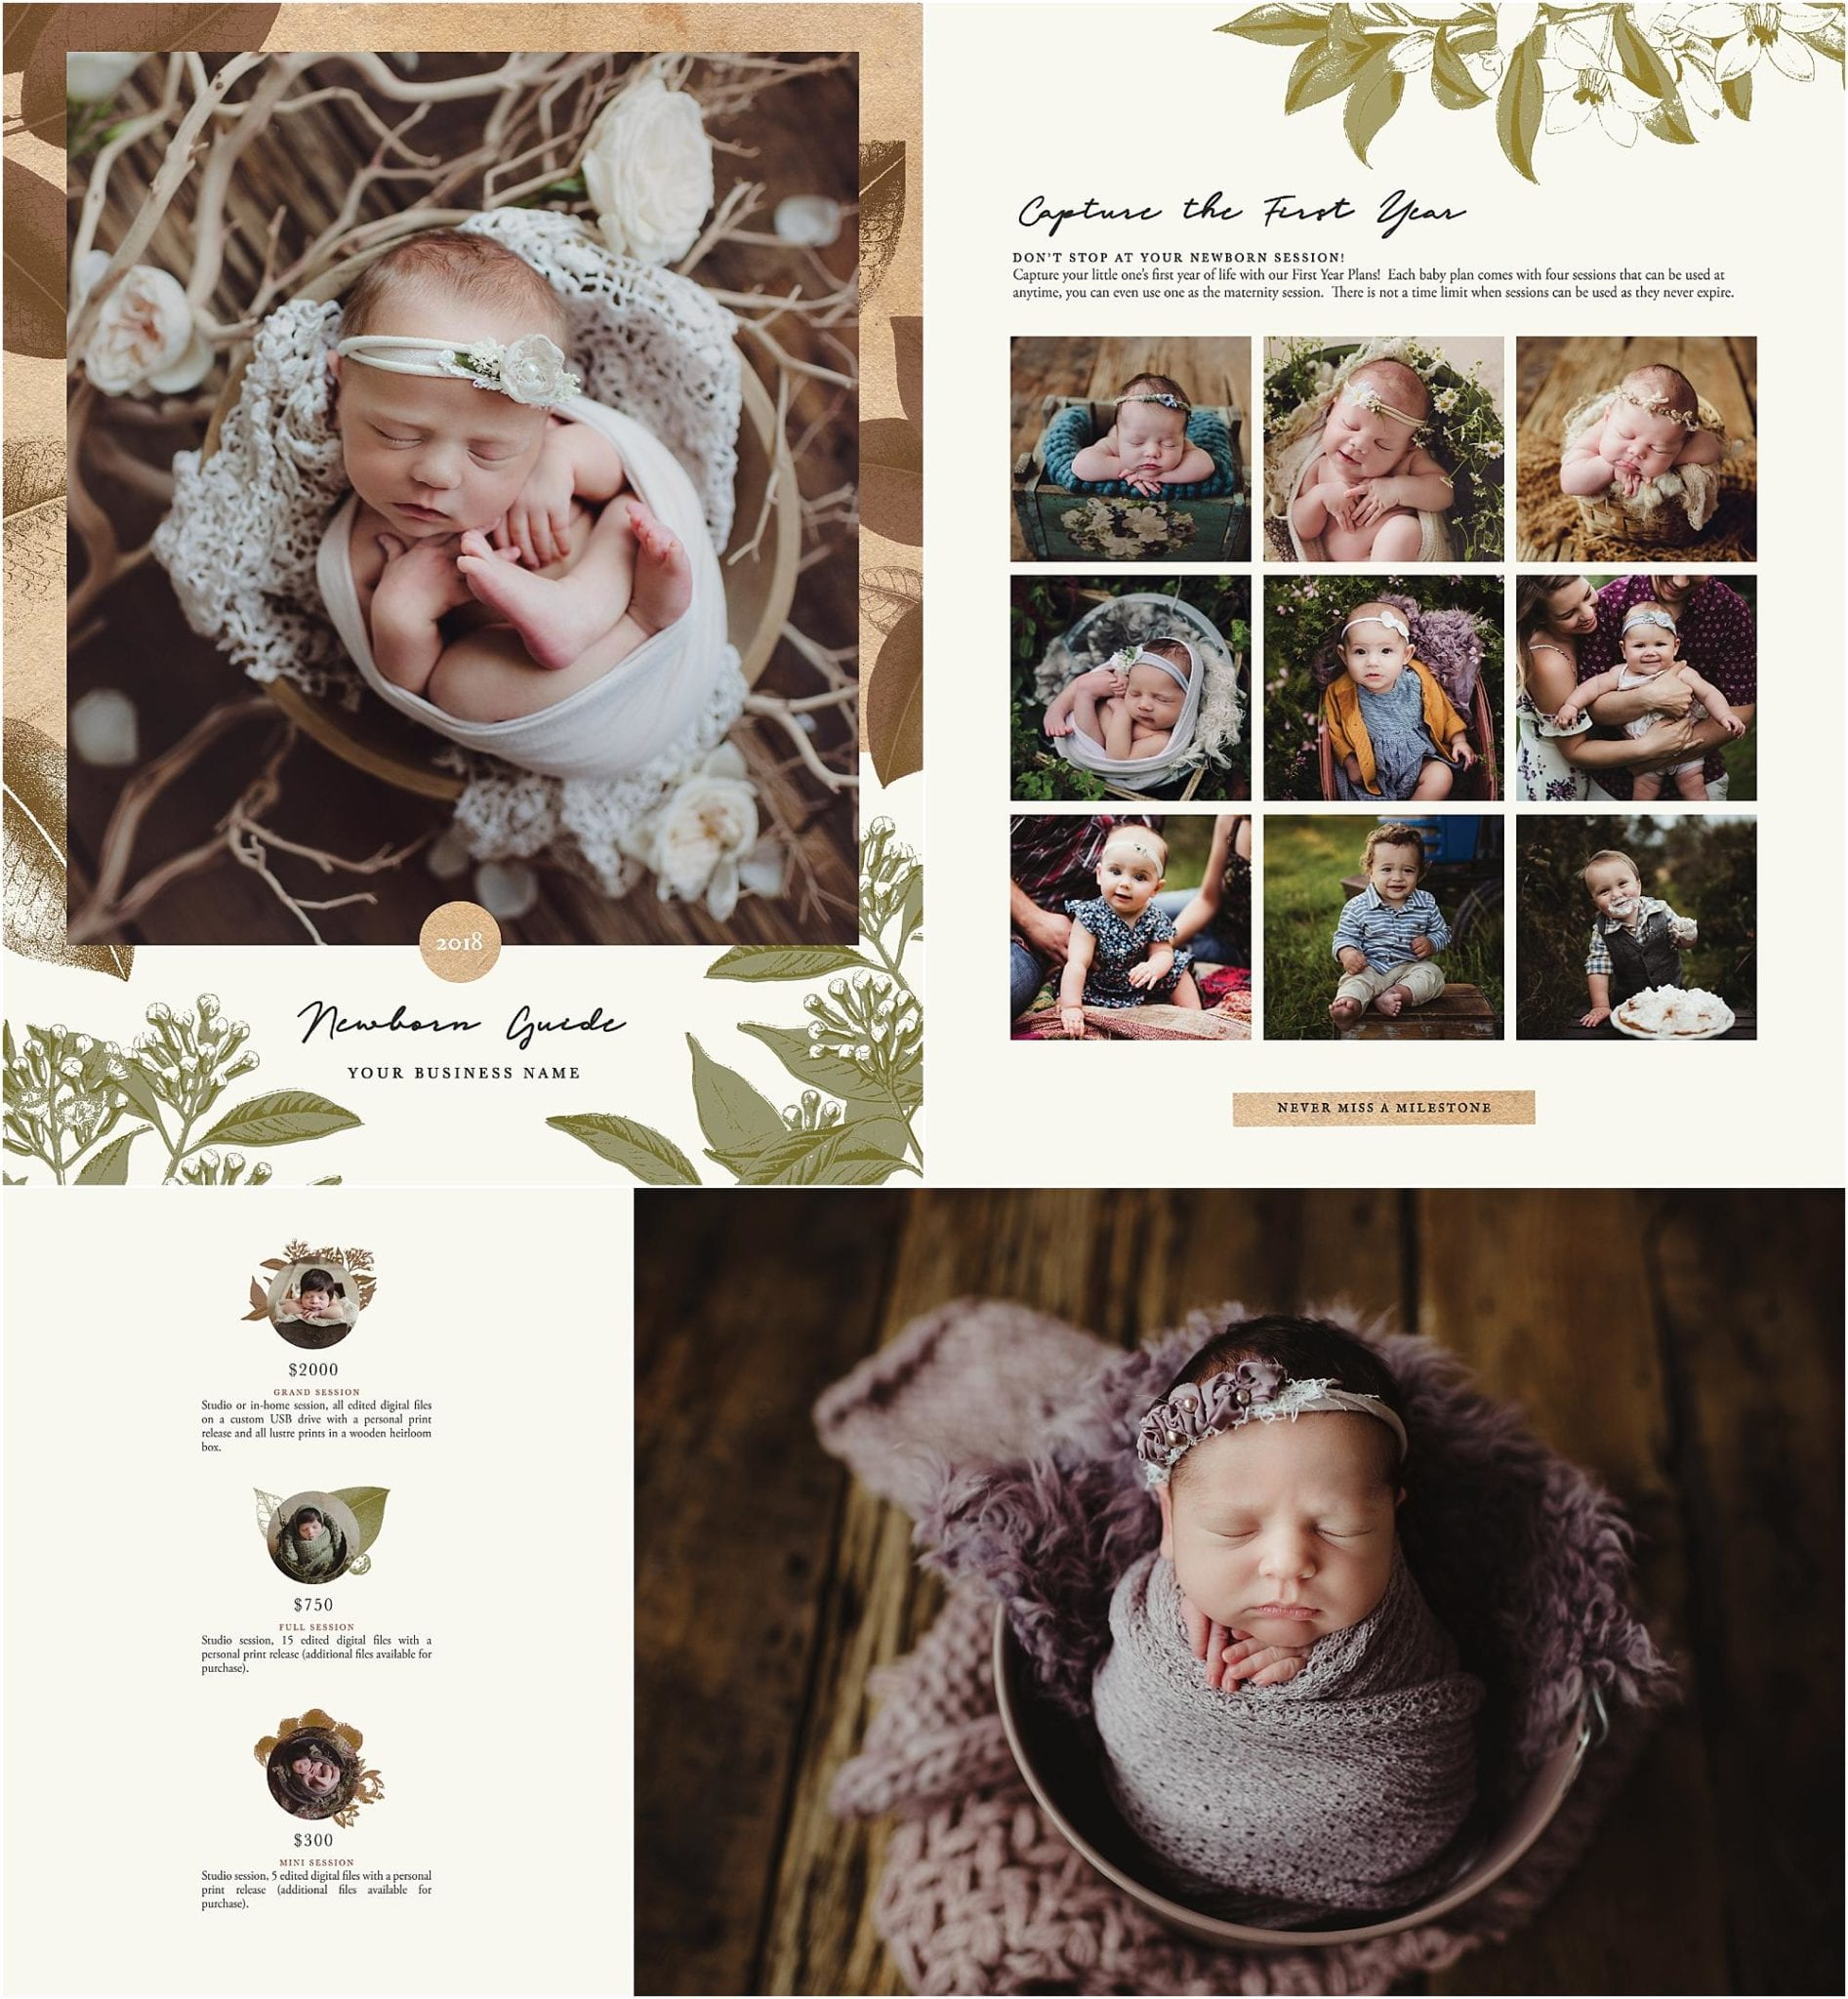 newborn photography pricing guide